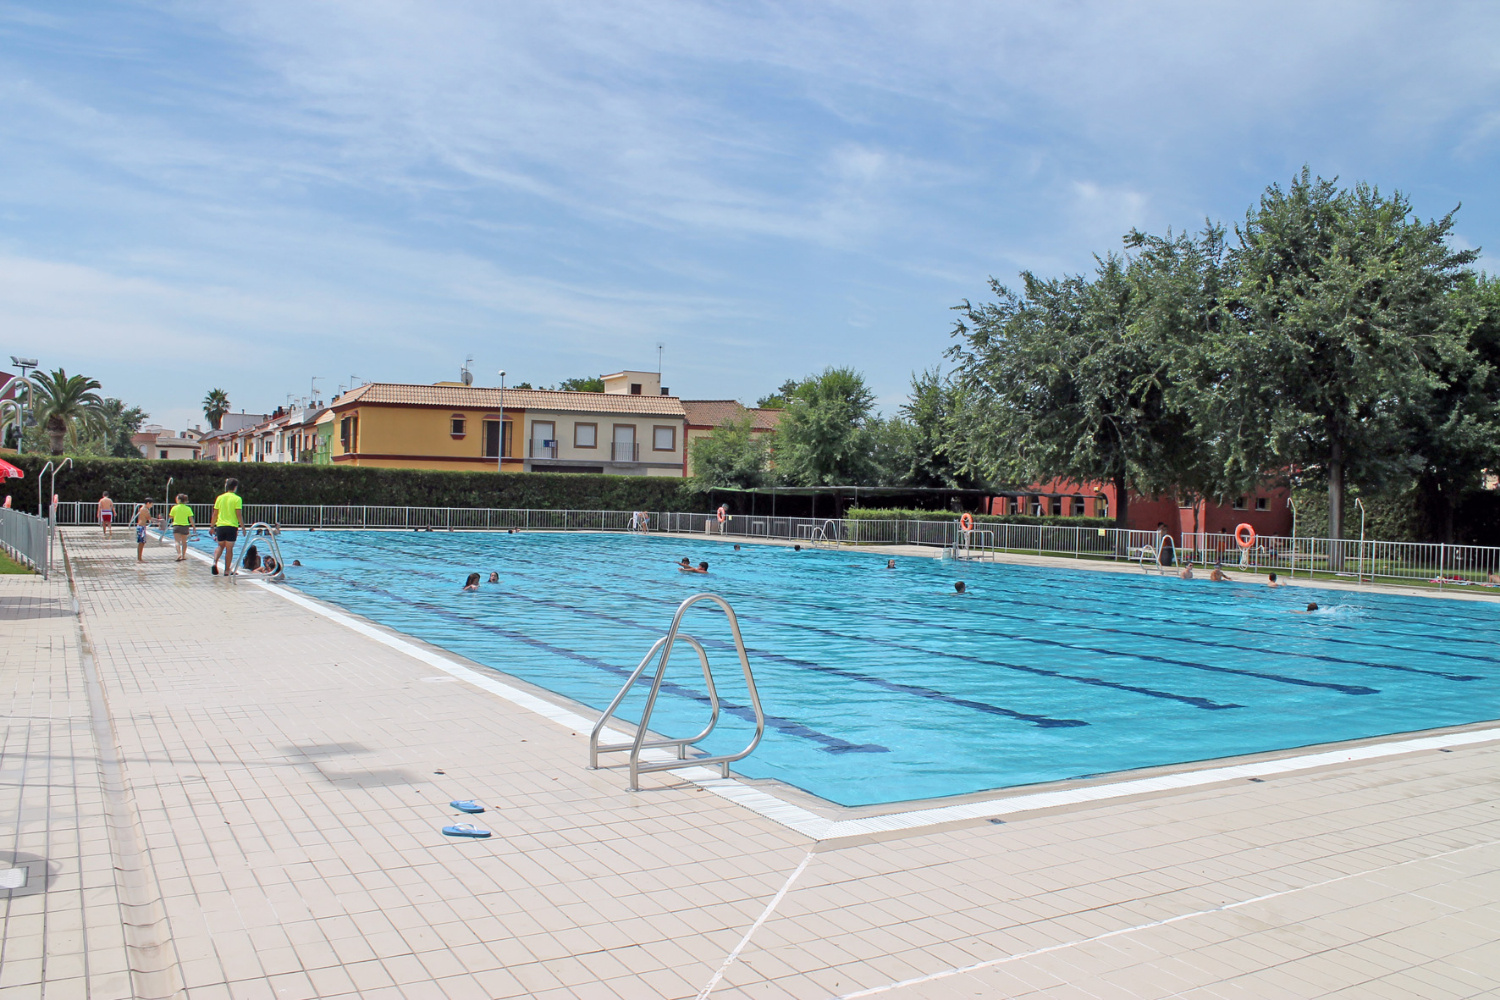 Piscina sevilla la nueva great piscina sevilla la nueva for Piscine sevilla